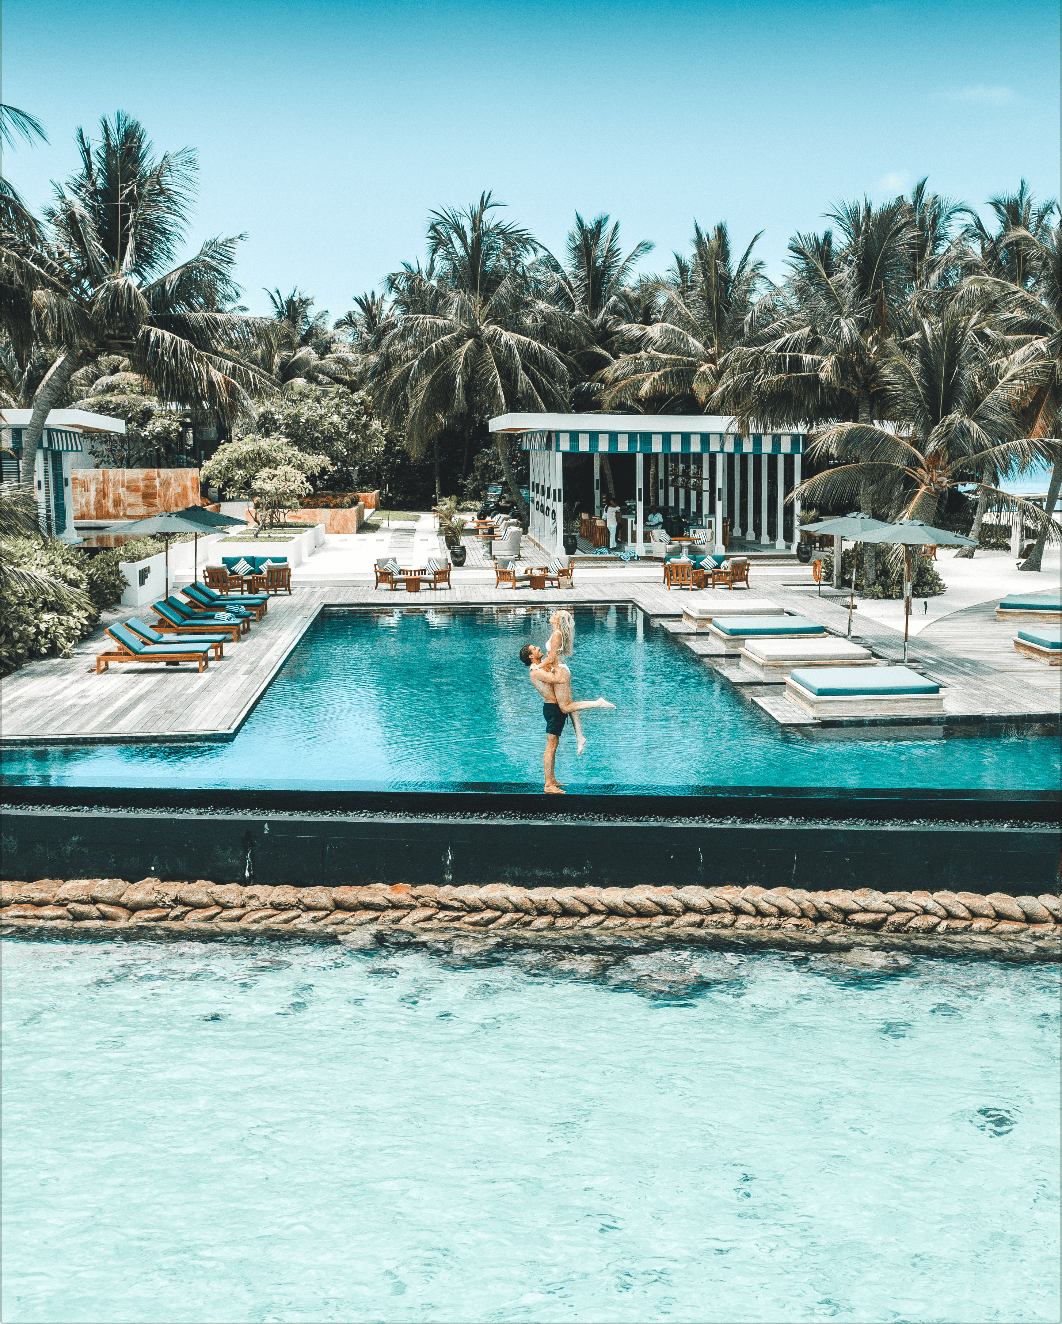 raffles meradhoo maldives pool